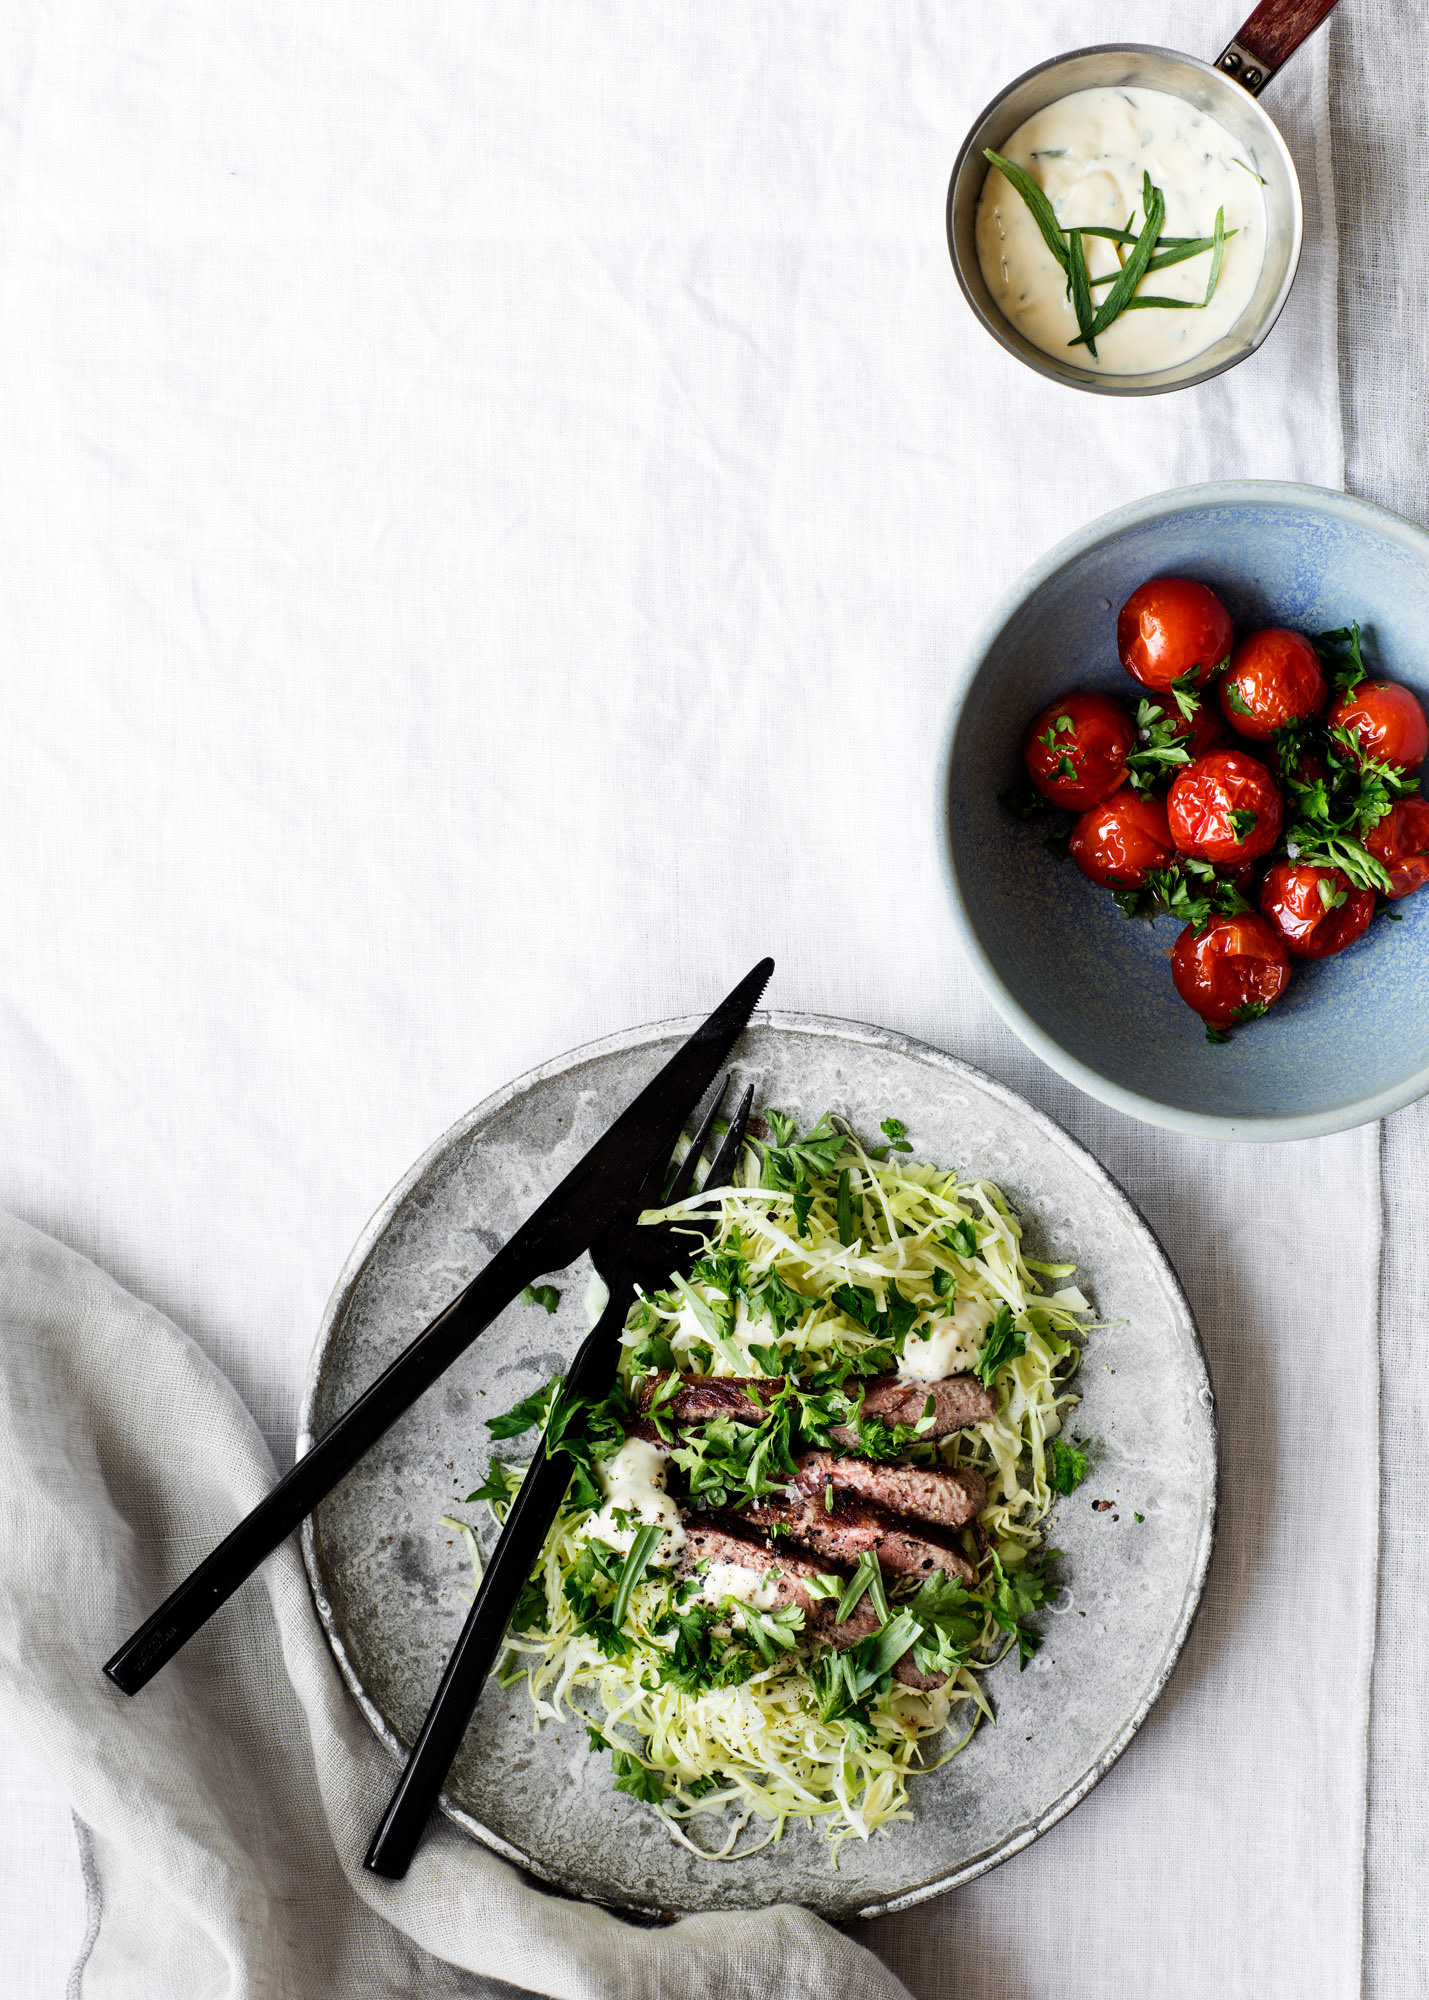 Sporty Beef Béarnaise with Cabbage and Baked Tomatoes